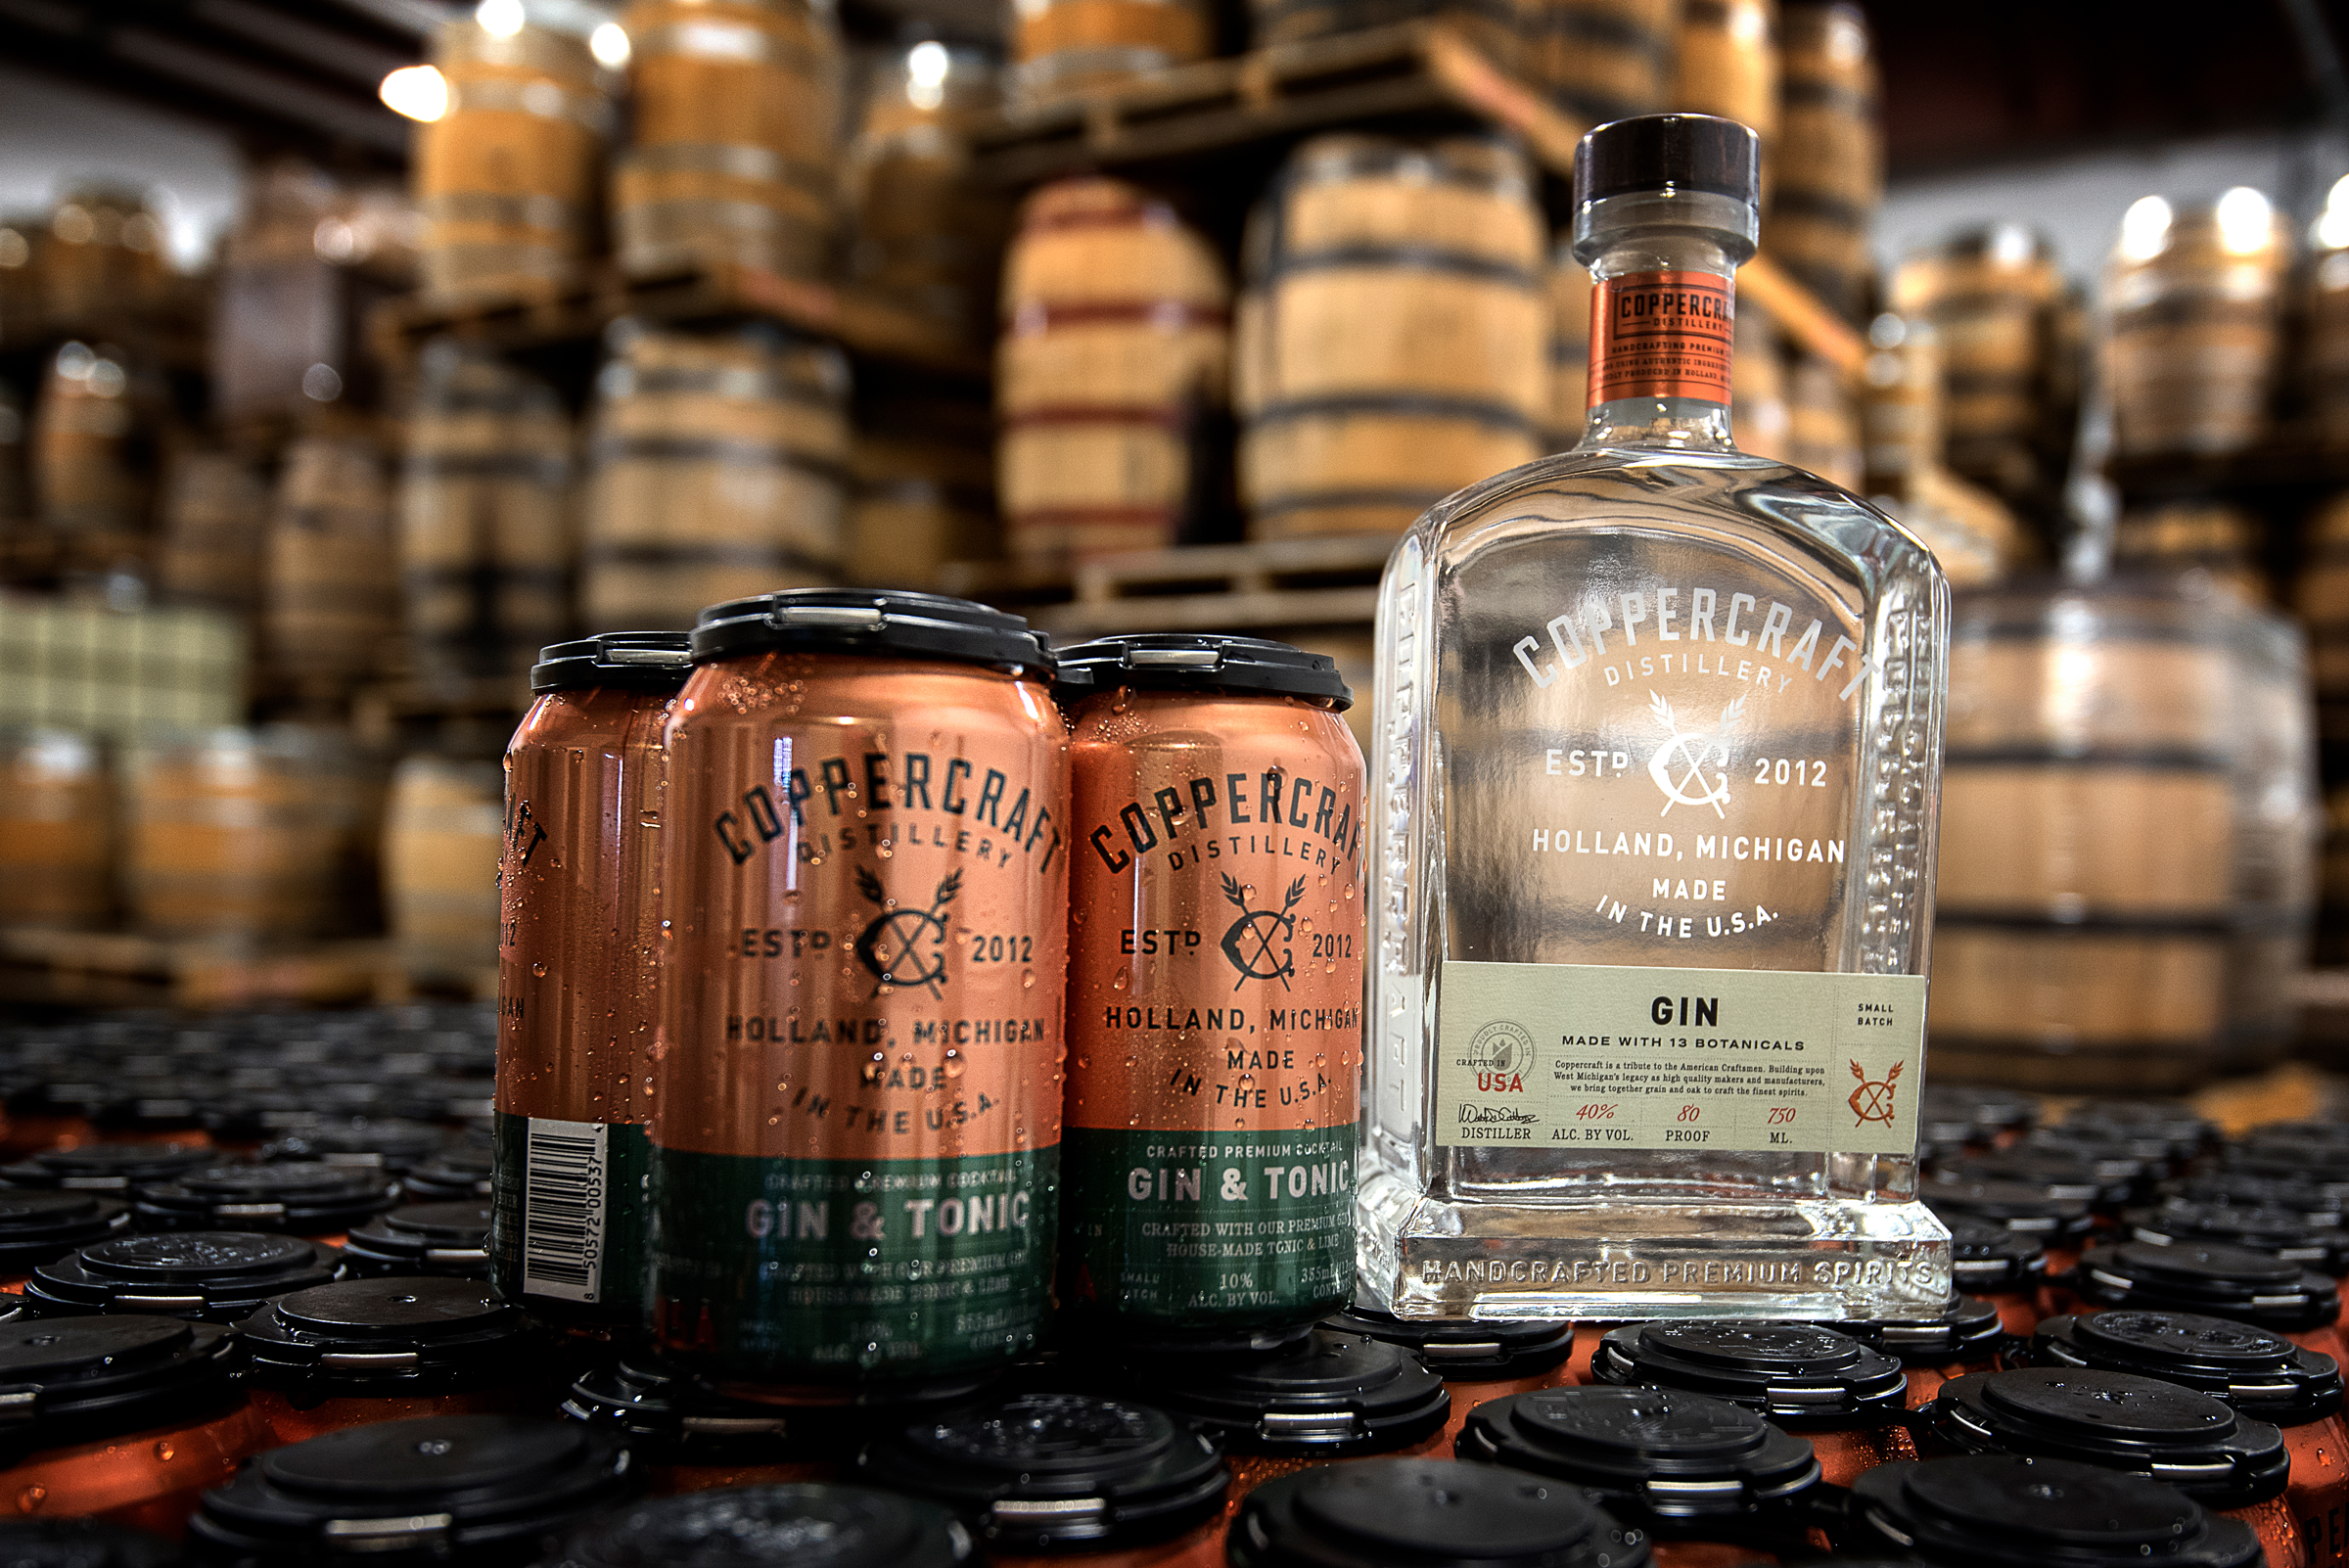 Coppercraft gin & tonic beverages.